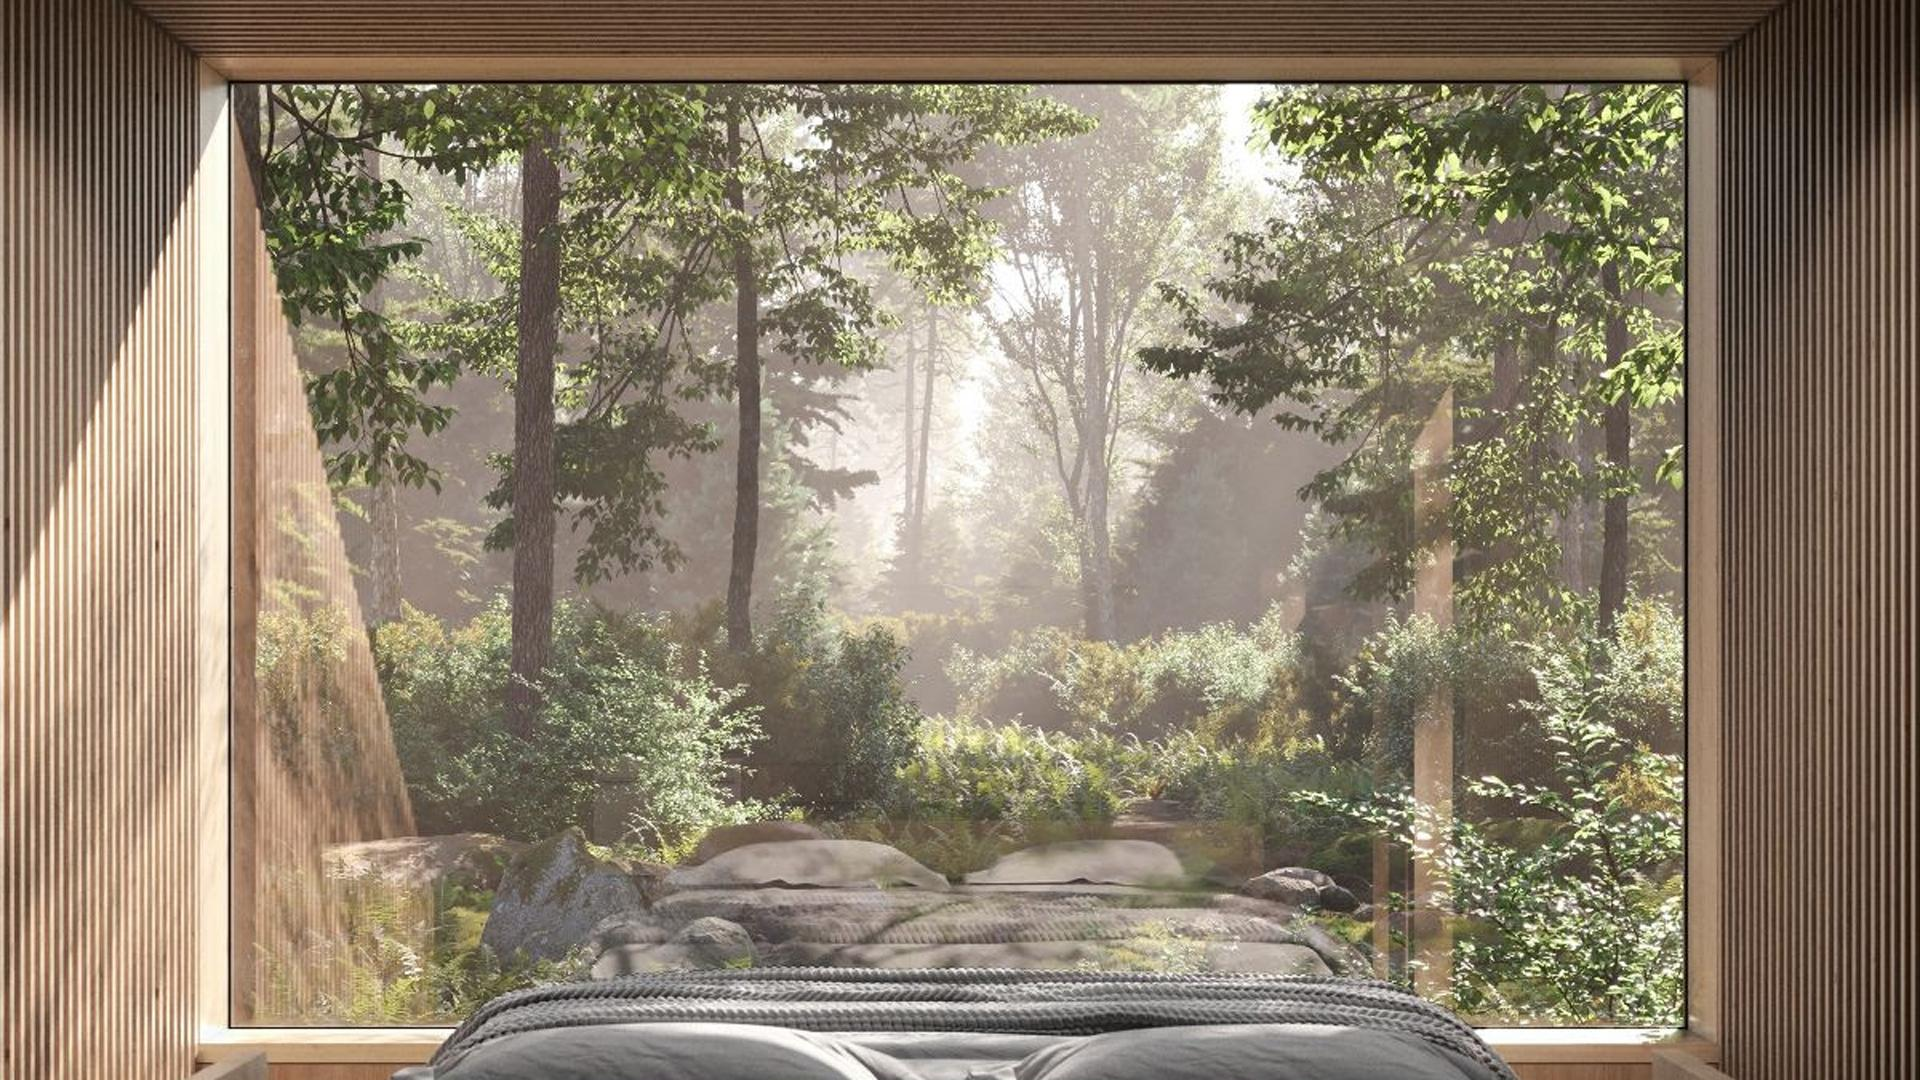 Arcana self-directed nature retreat opens in Ontario | Inside an Arcana cabin